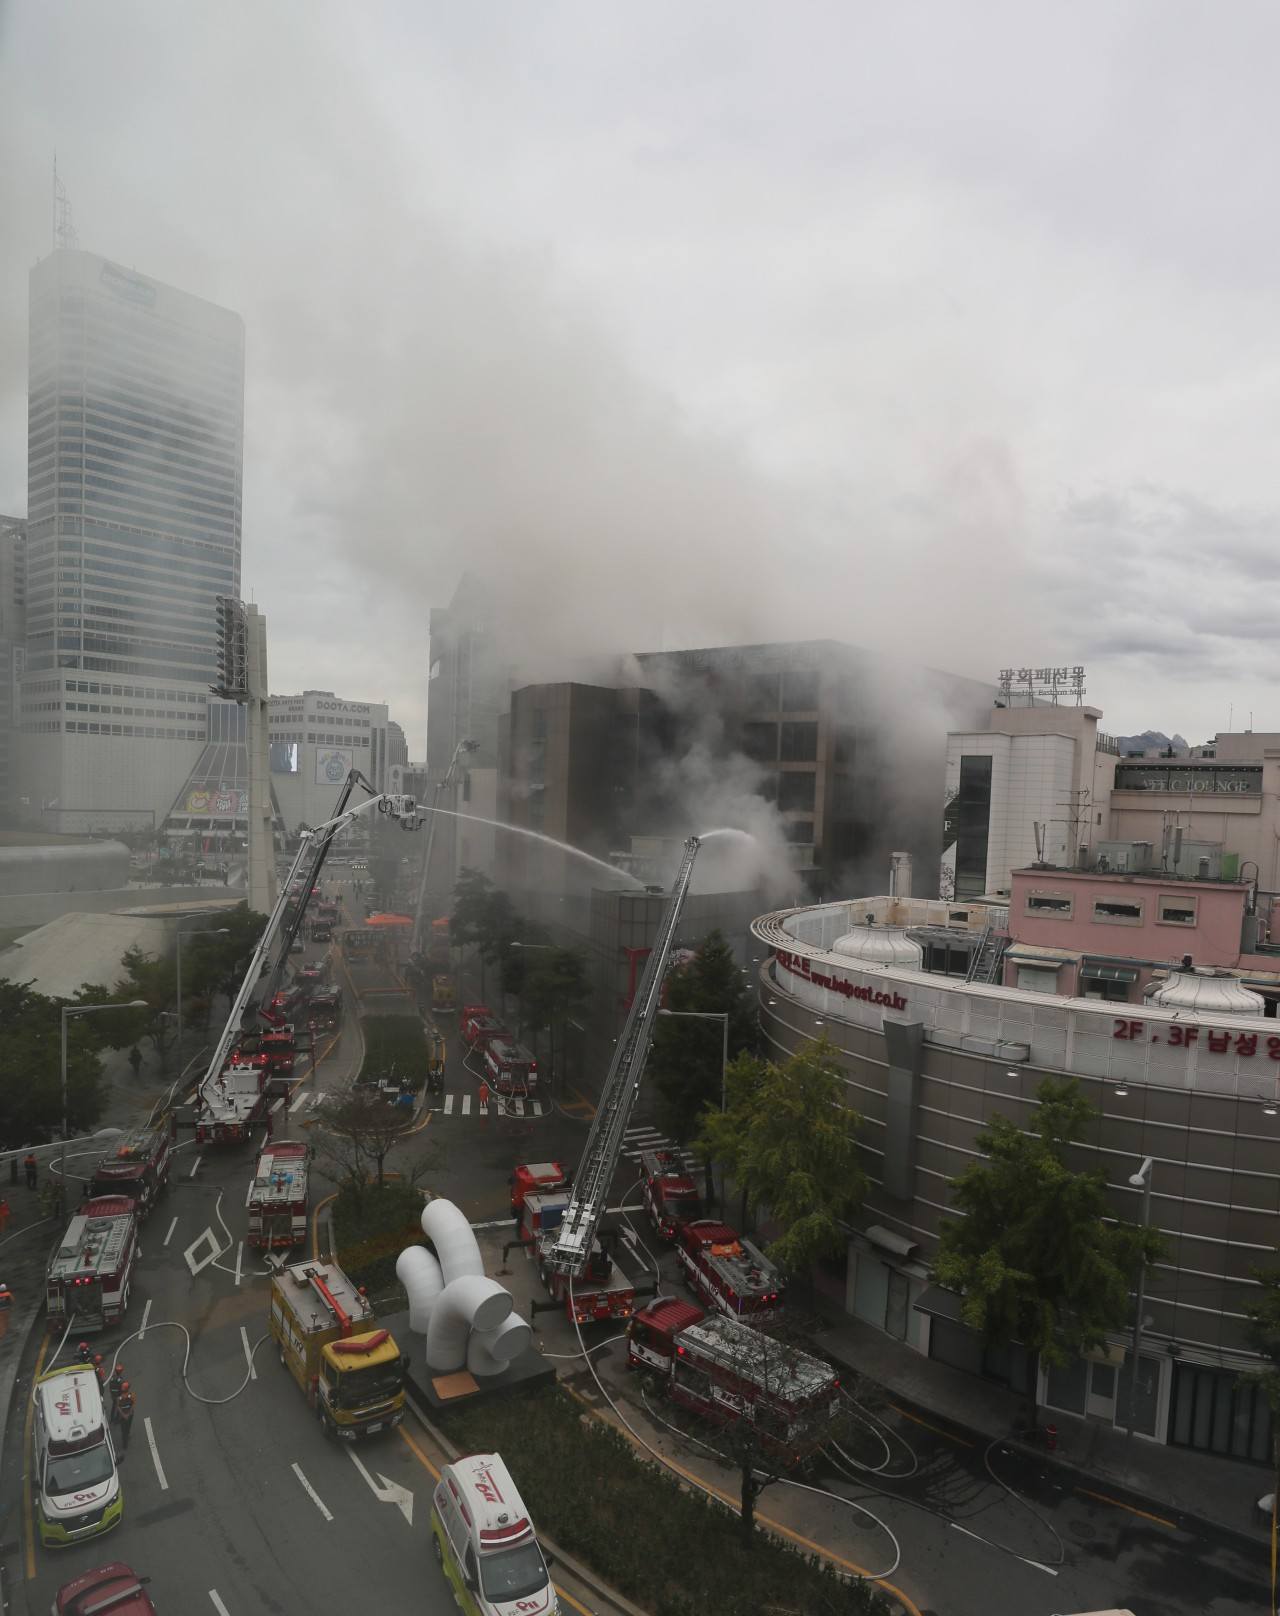 Firefighters attempt to subdue a fire at Jeil Pyunghwa Clothing Market in Sindang-dong, Seoul, at around 11 a.m. Sunday (Yonhap)